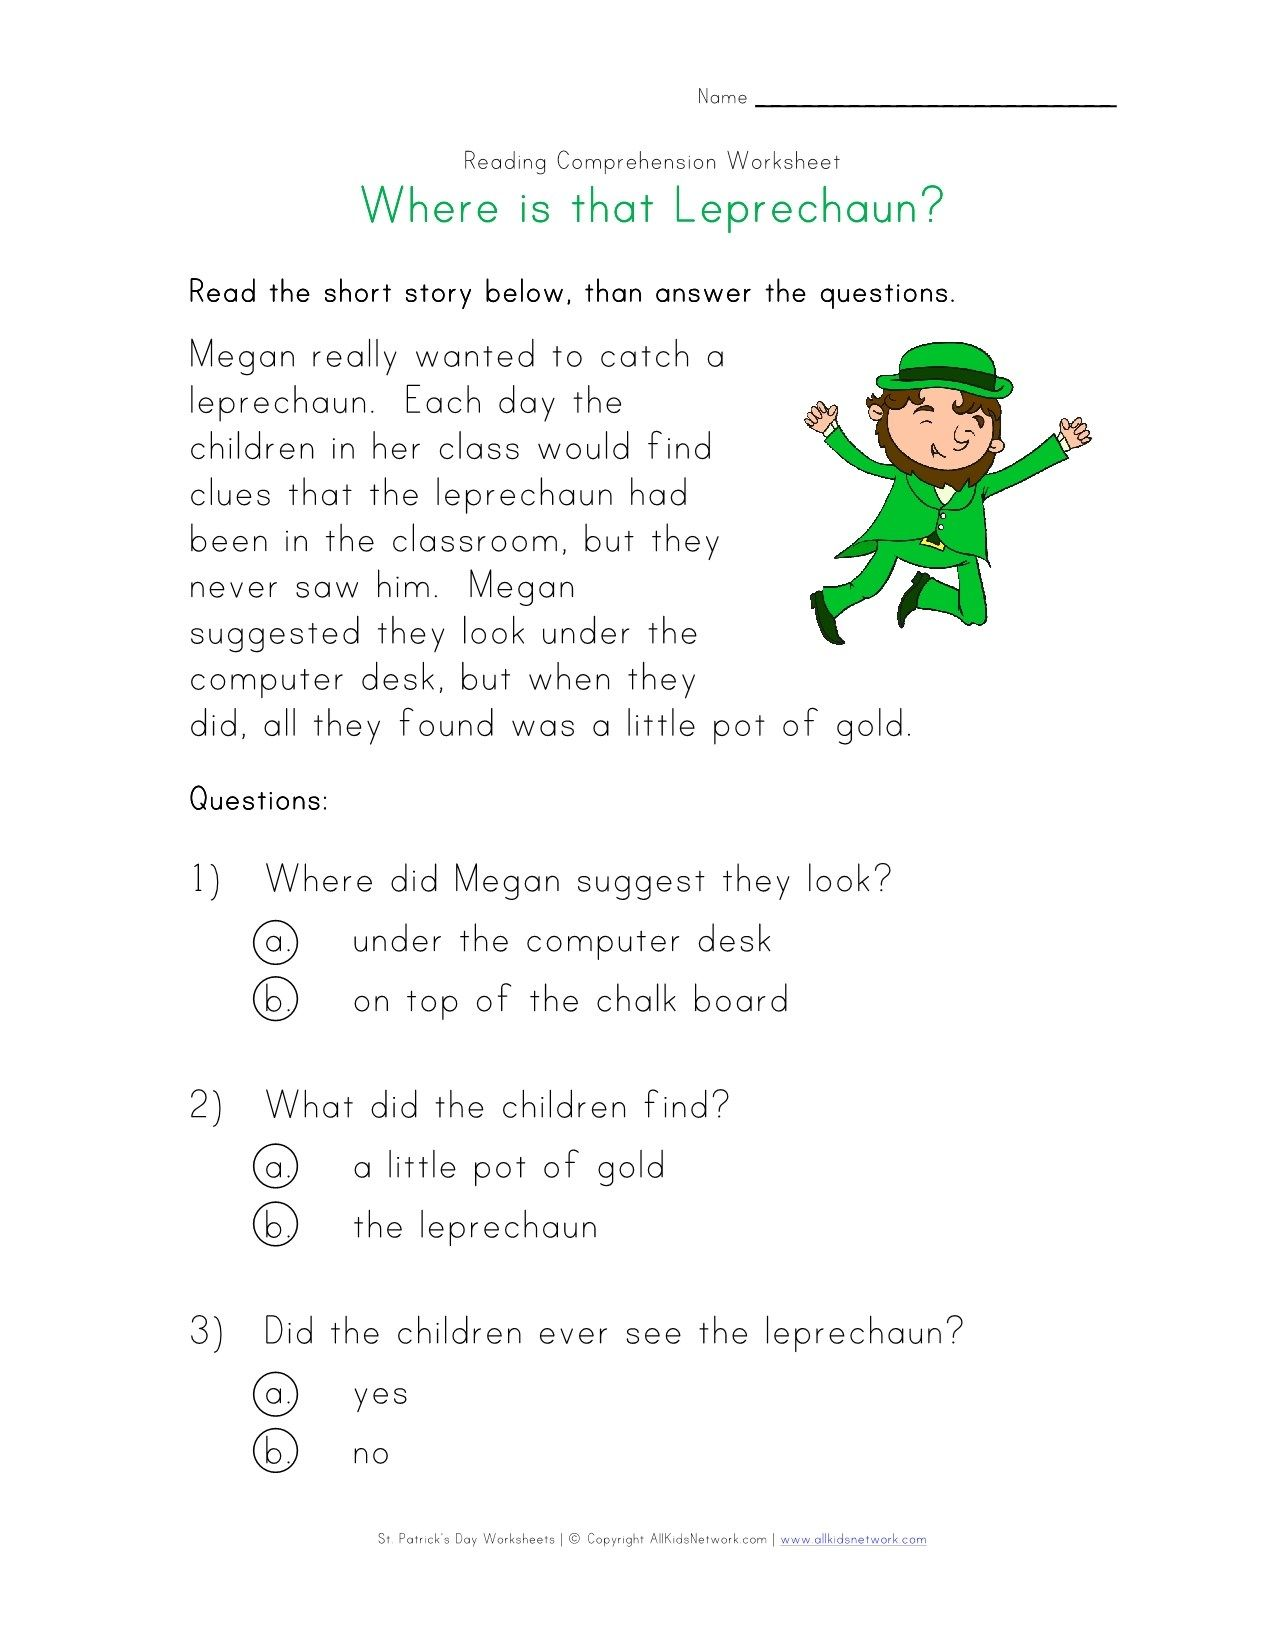 Leprechaun Reading Comprehension Worksheet